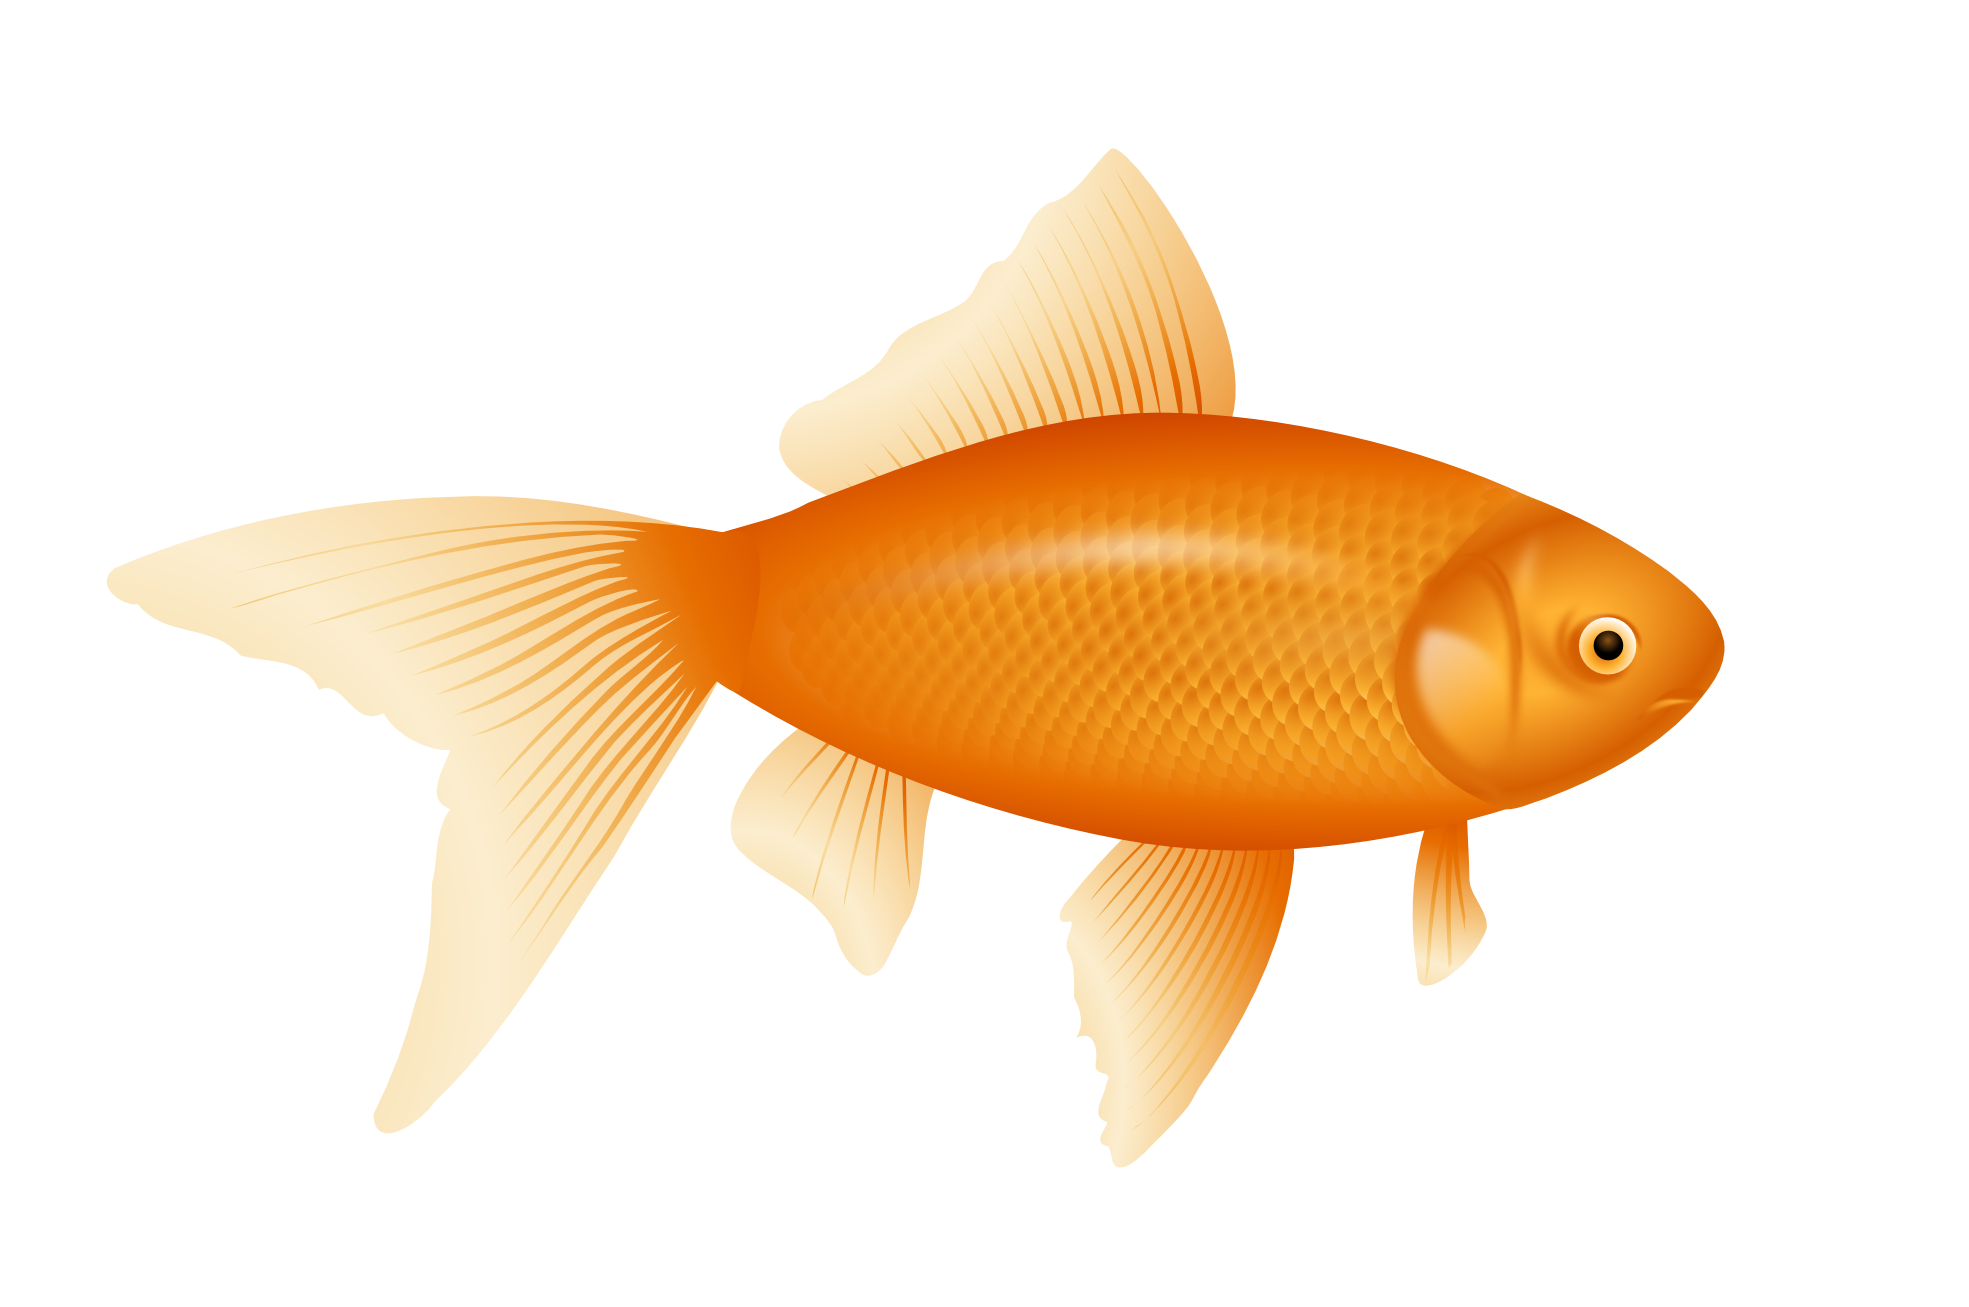 Orange Cartoon Fish 518.03 Kb